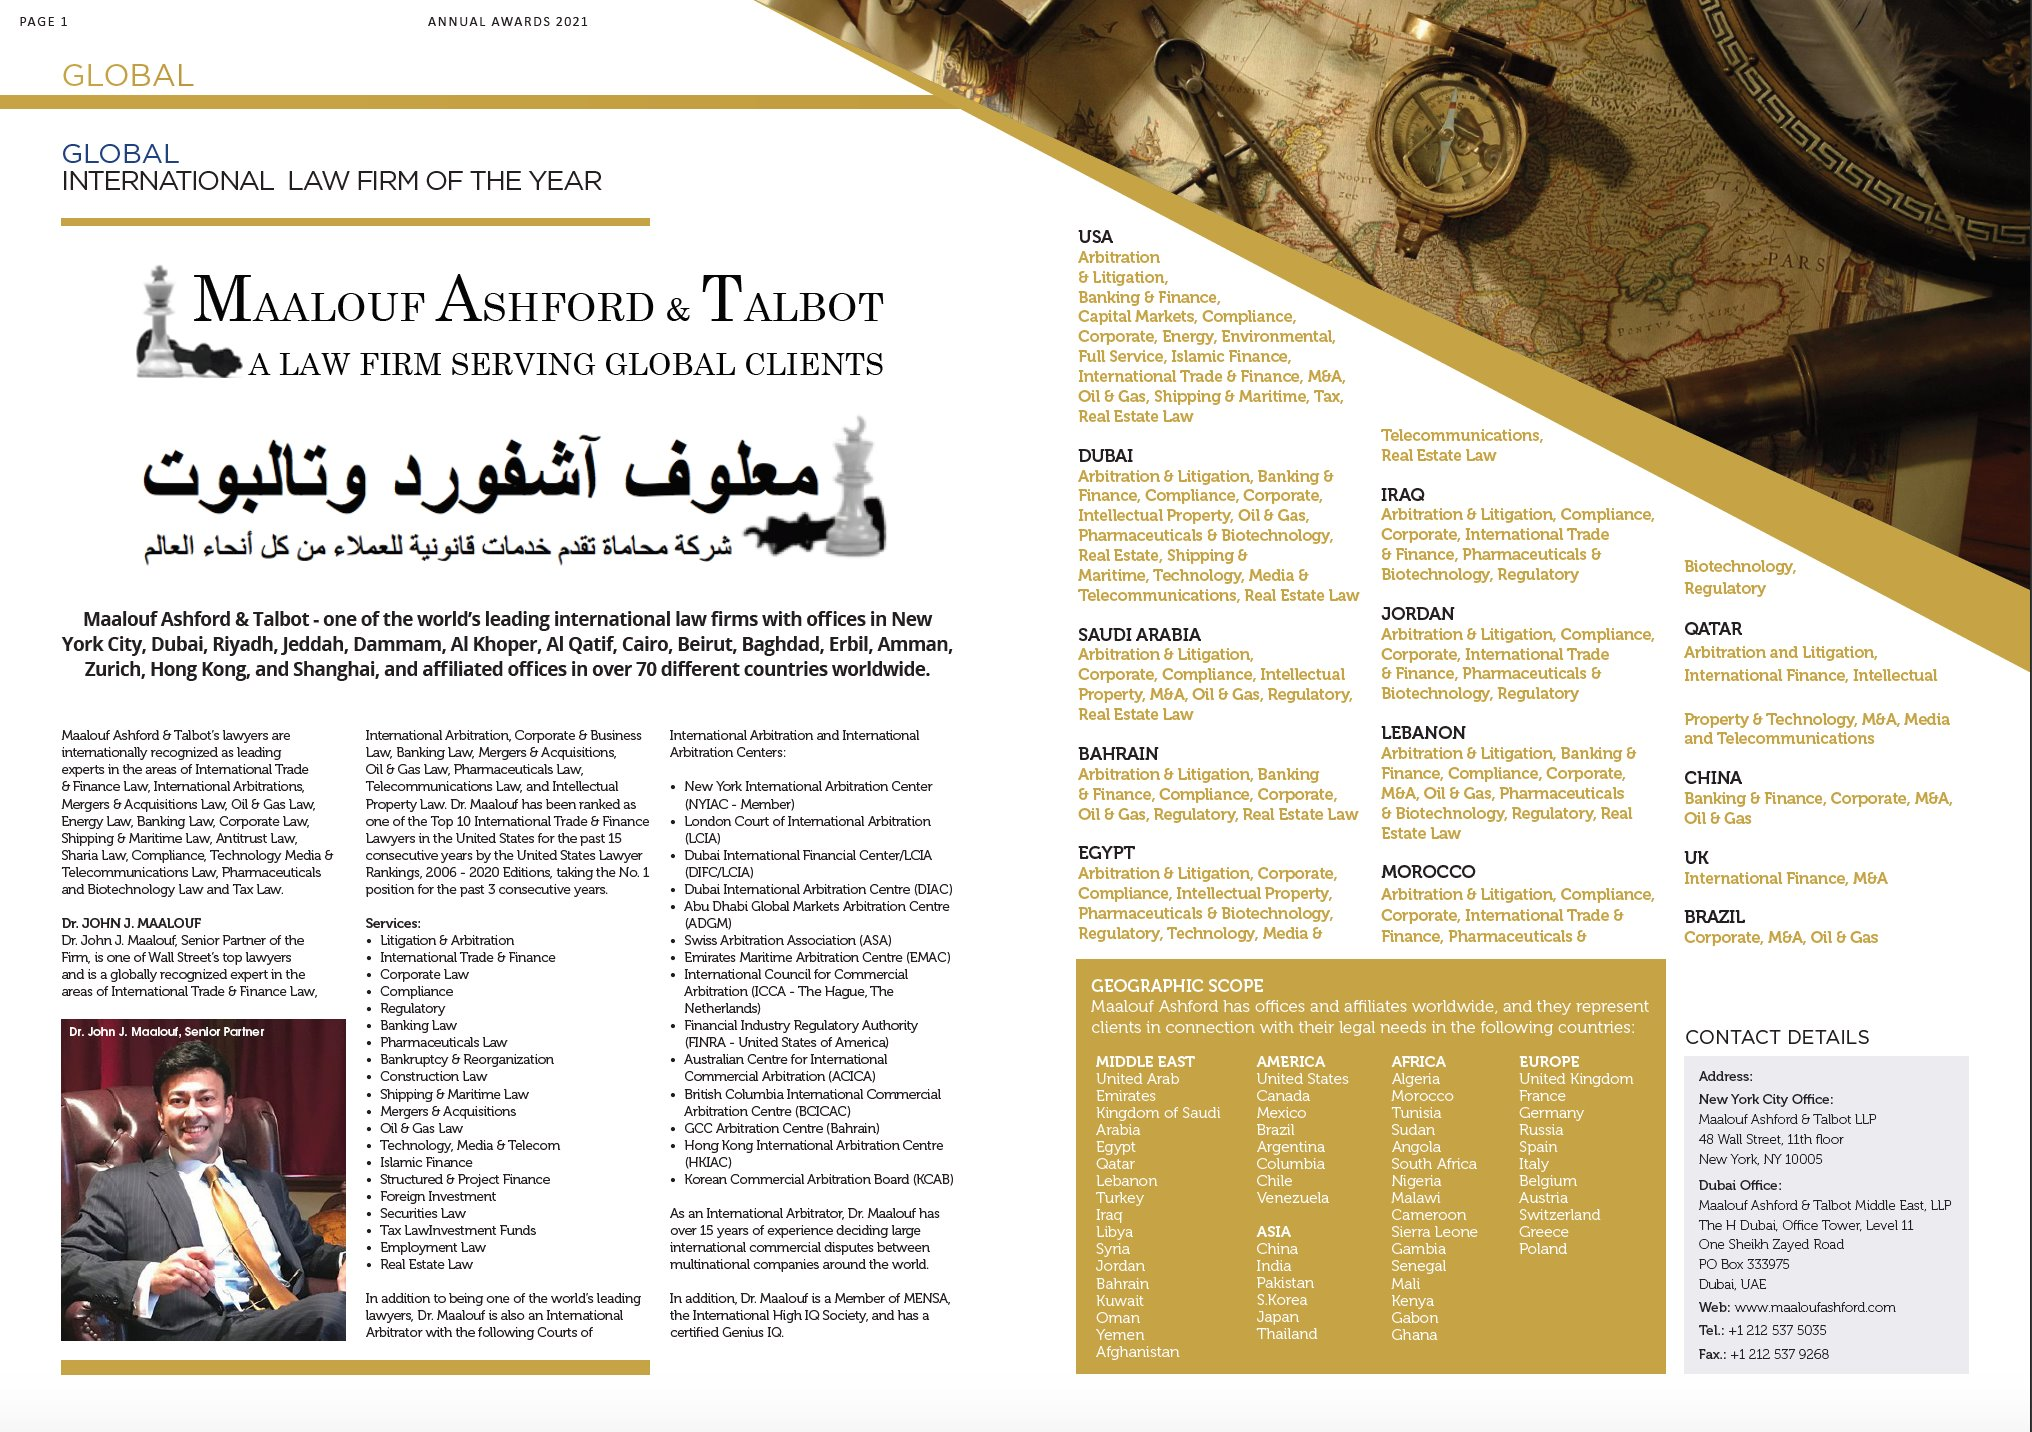 Maalouf Ashford & Talbot Named Law Firm of the Year for 2021 in 13 Countries and in Multiple Categories